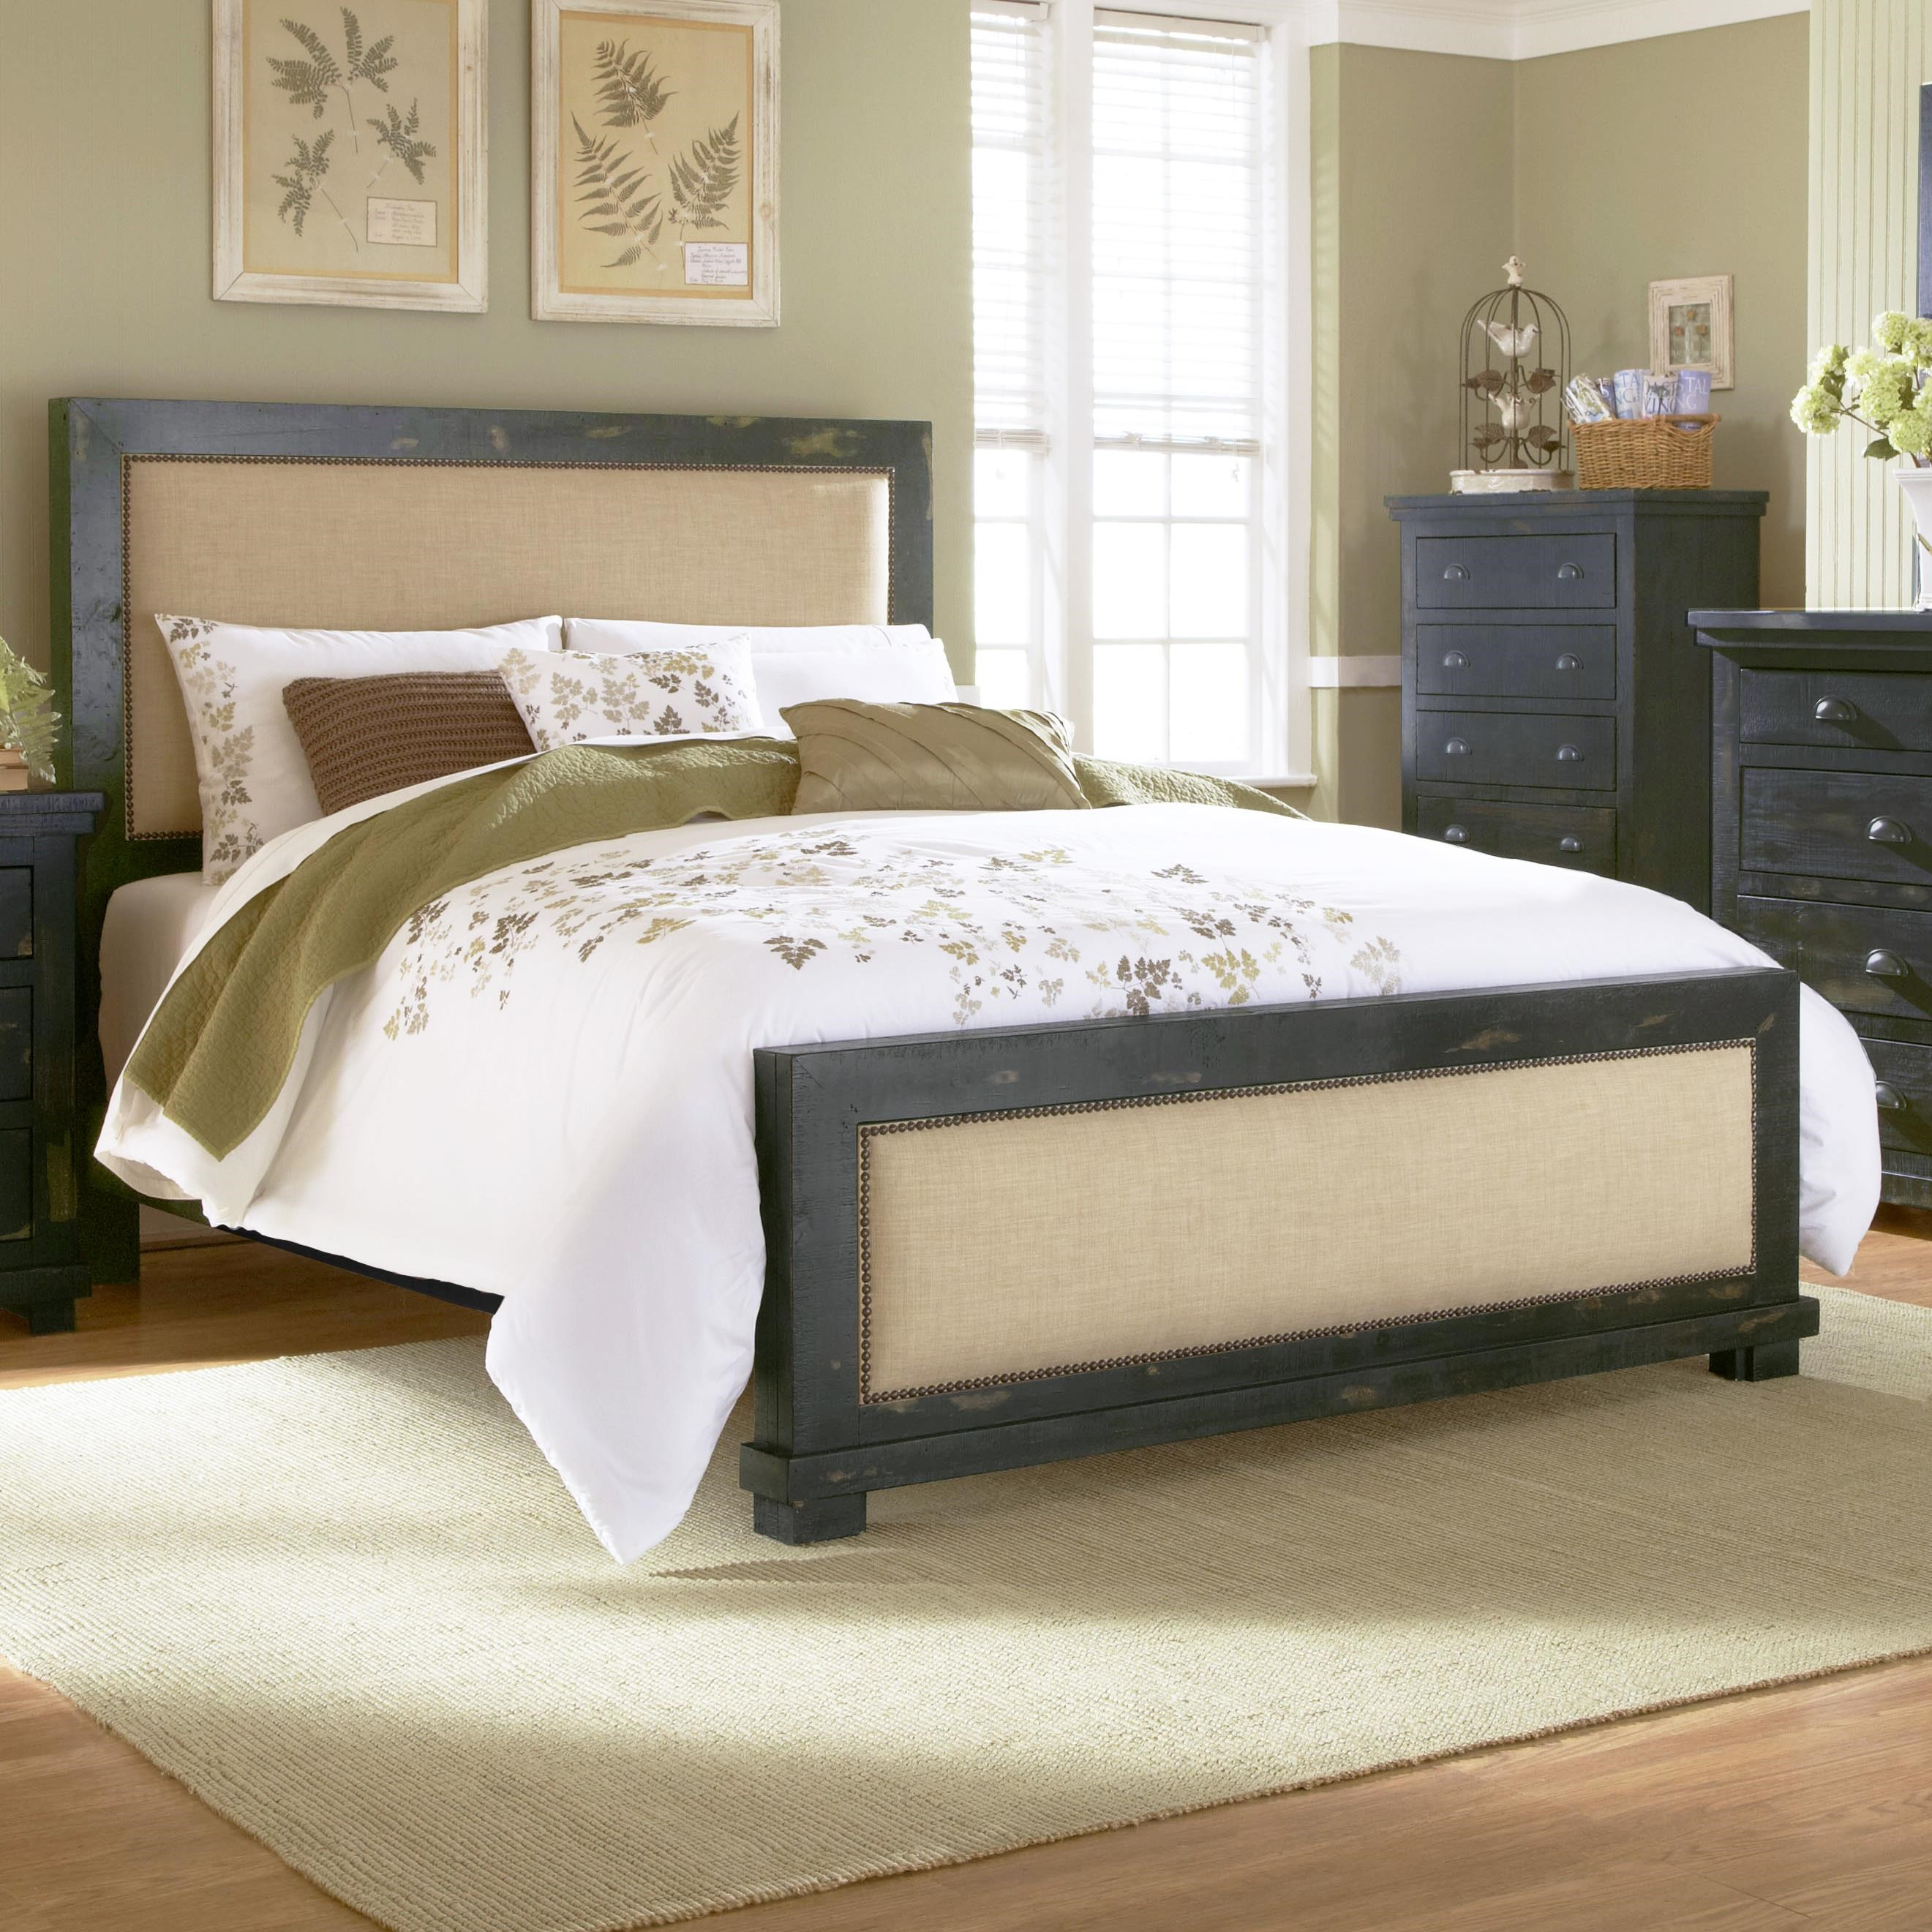 Ordinaire Progressive Furniture Willow King Upholstered Bed With Distressed Pine Frame